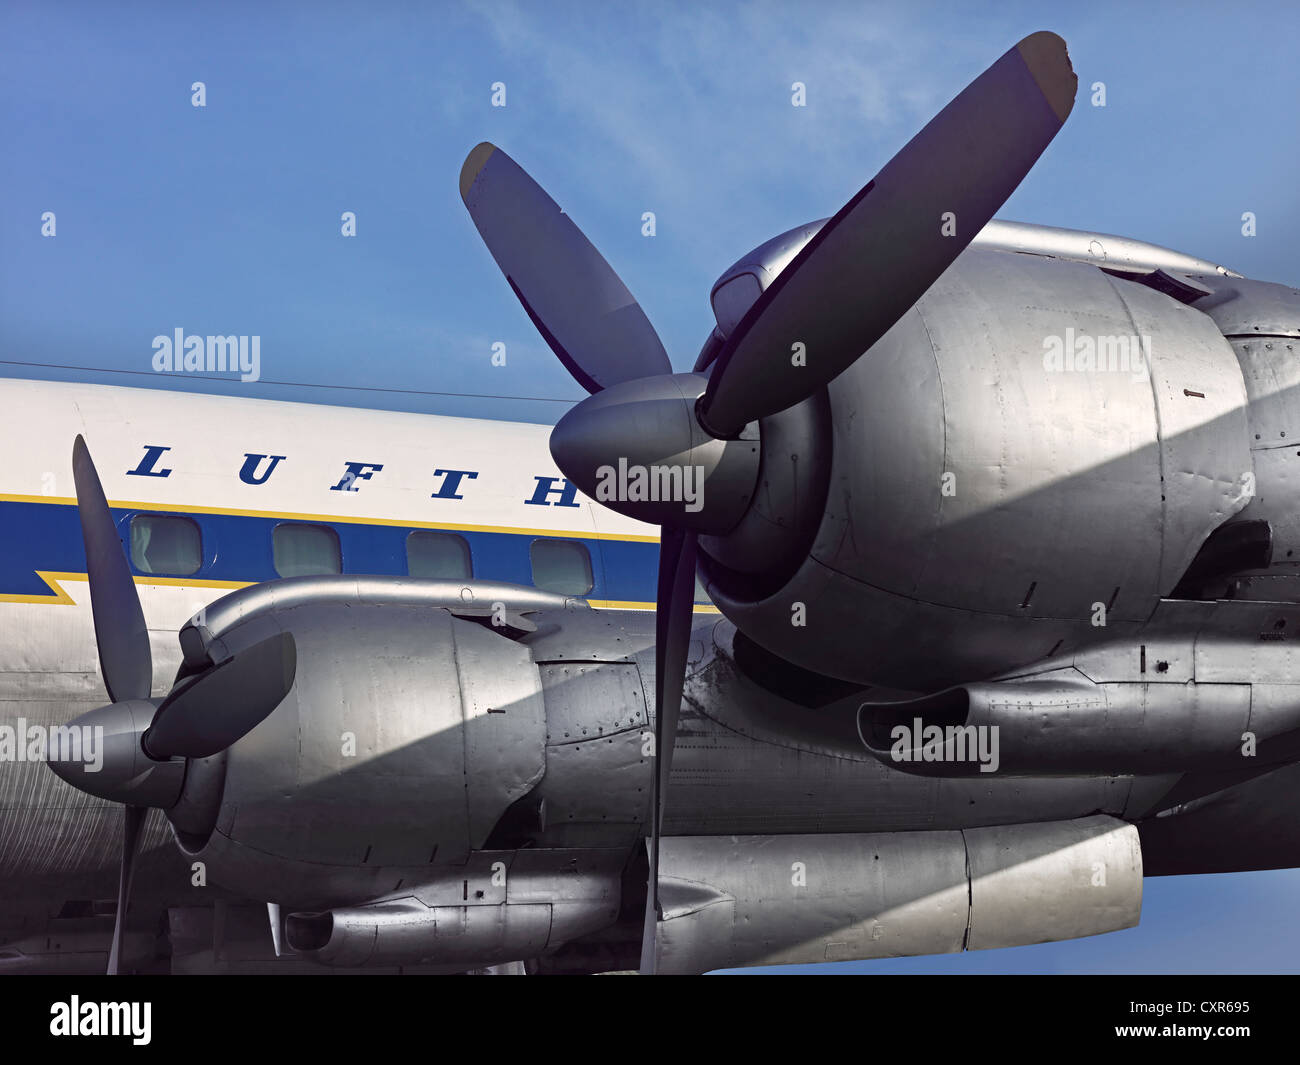 Engines of the Lockheed L-1049 G Super Constellation airplane, registration  D-ALEM